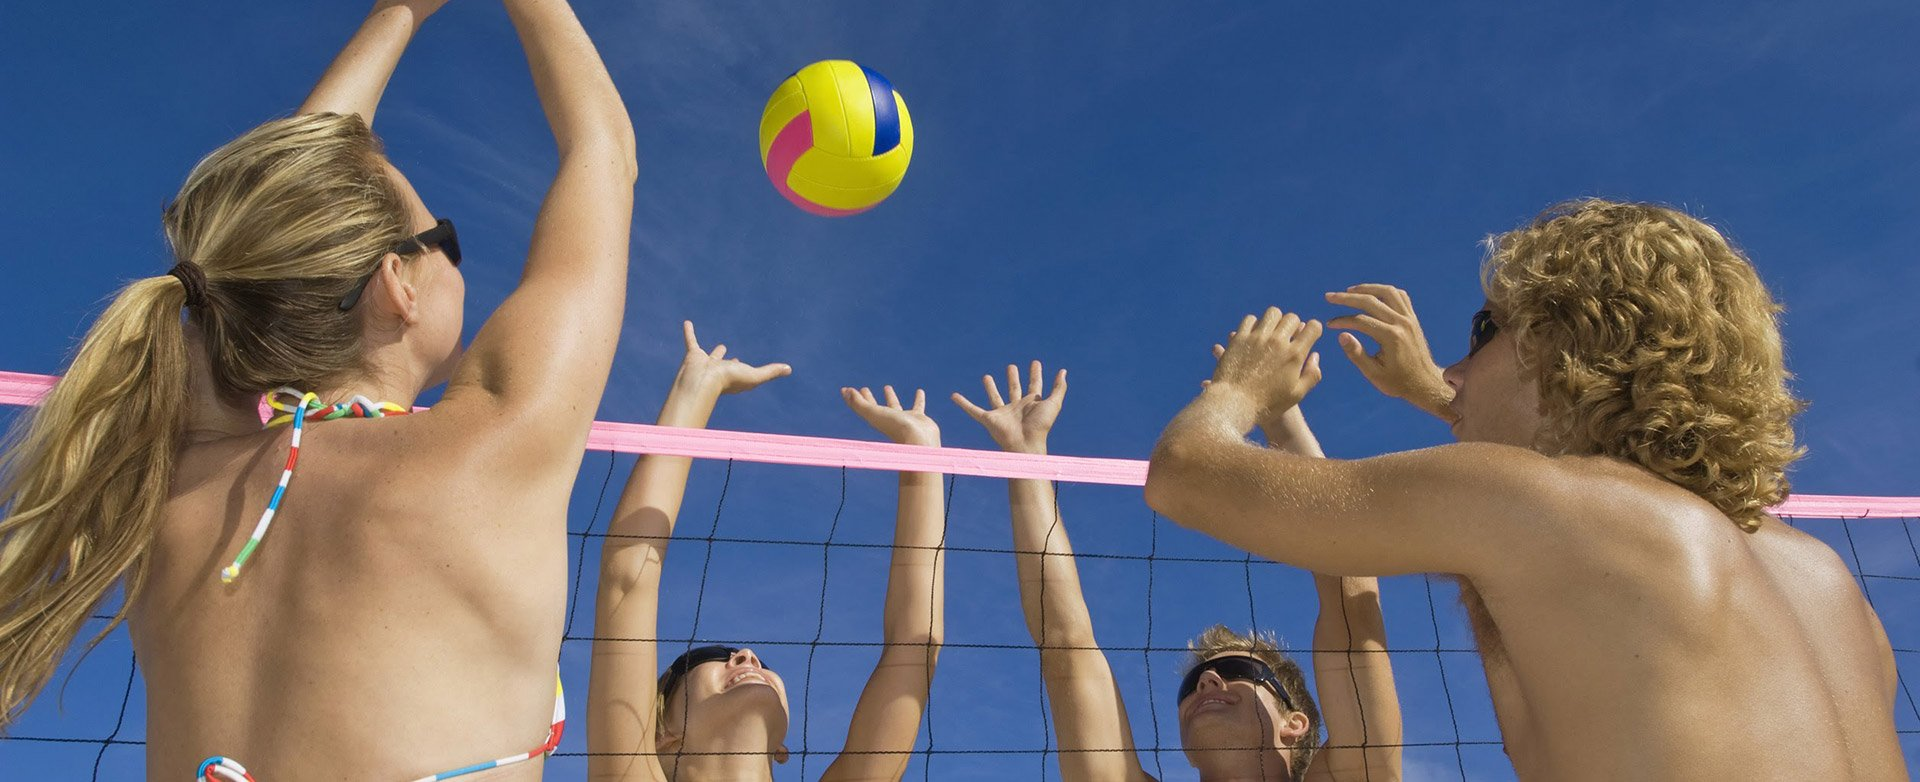 Game Point  in  new home commiunity Volleyball Courts in Richmond, TX